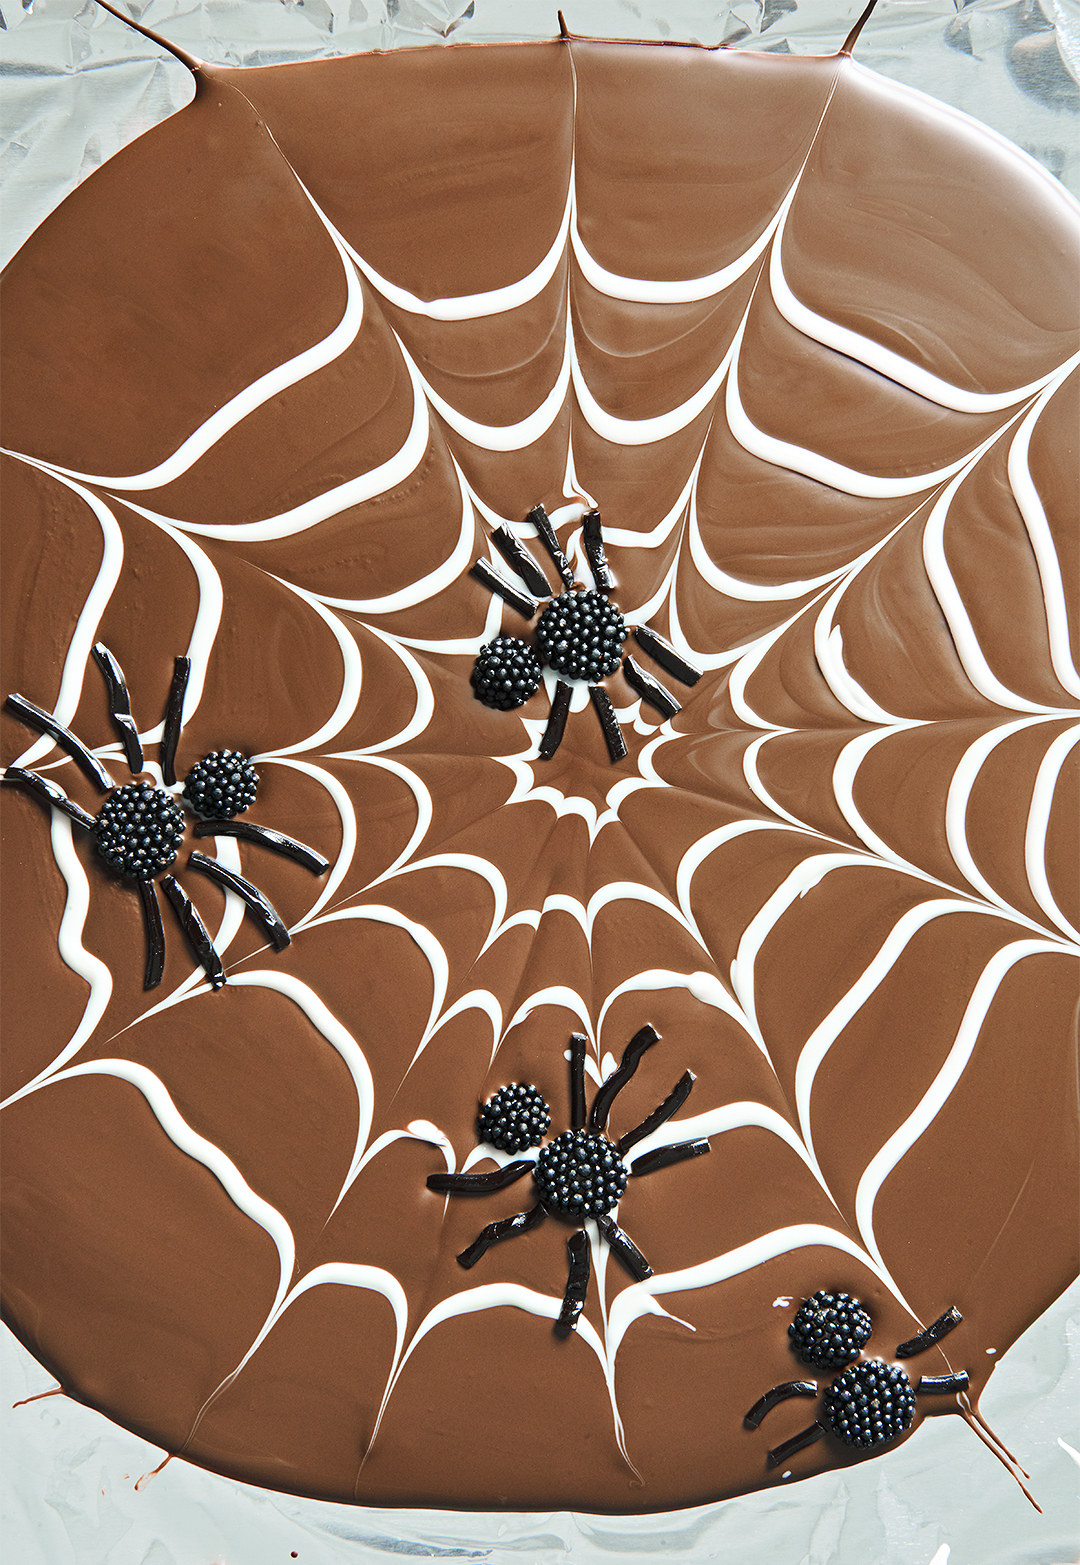 Creepy Cobweb Chocolate Bark with candy spiders